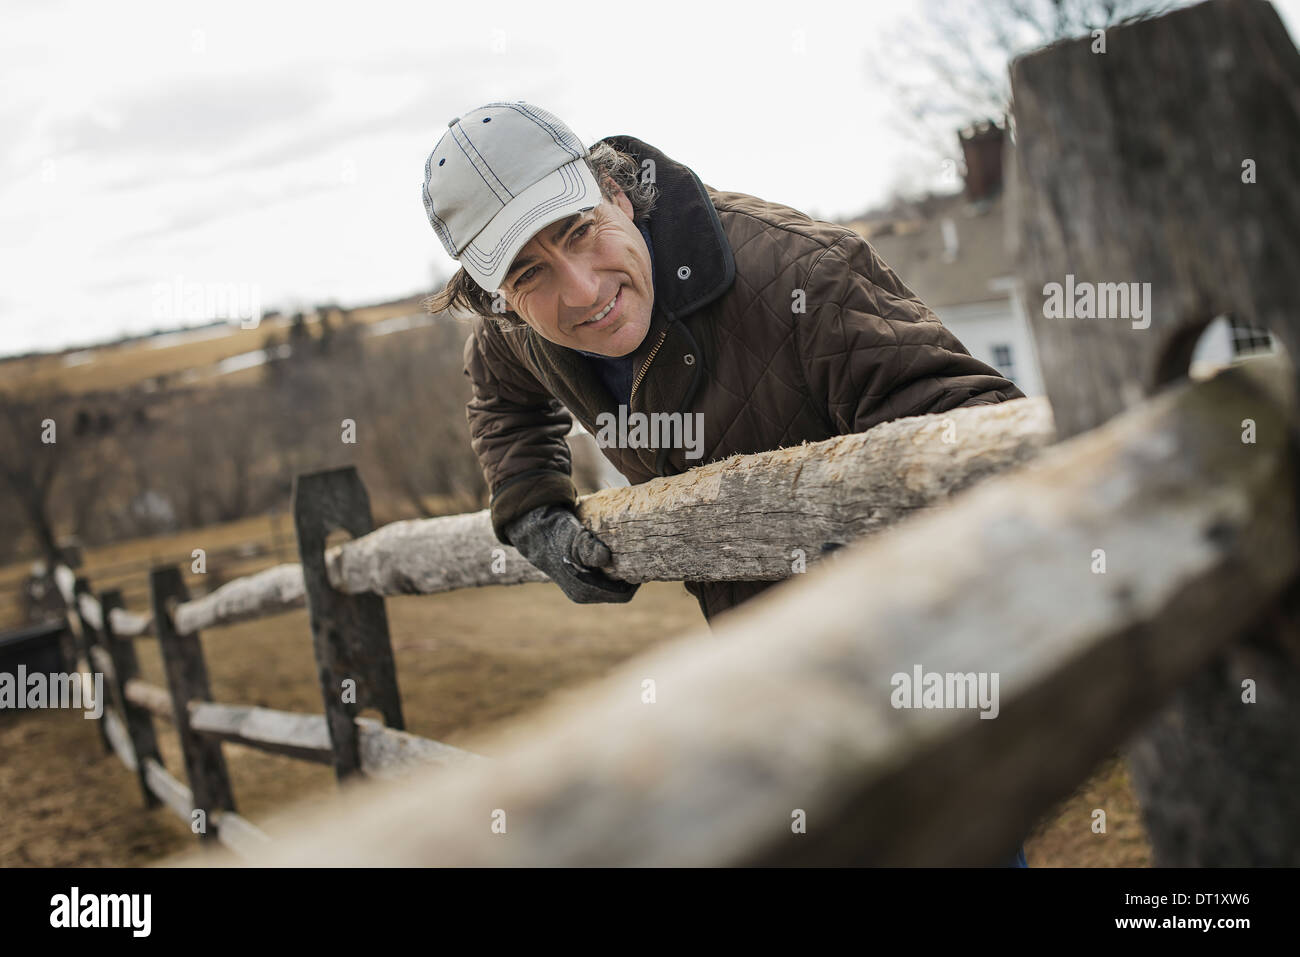 A man leaning against a post and rail fence on a farm in winter - Stock Image